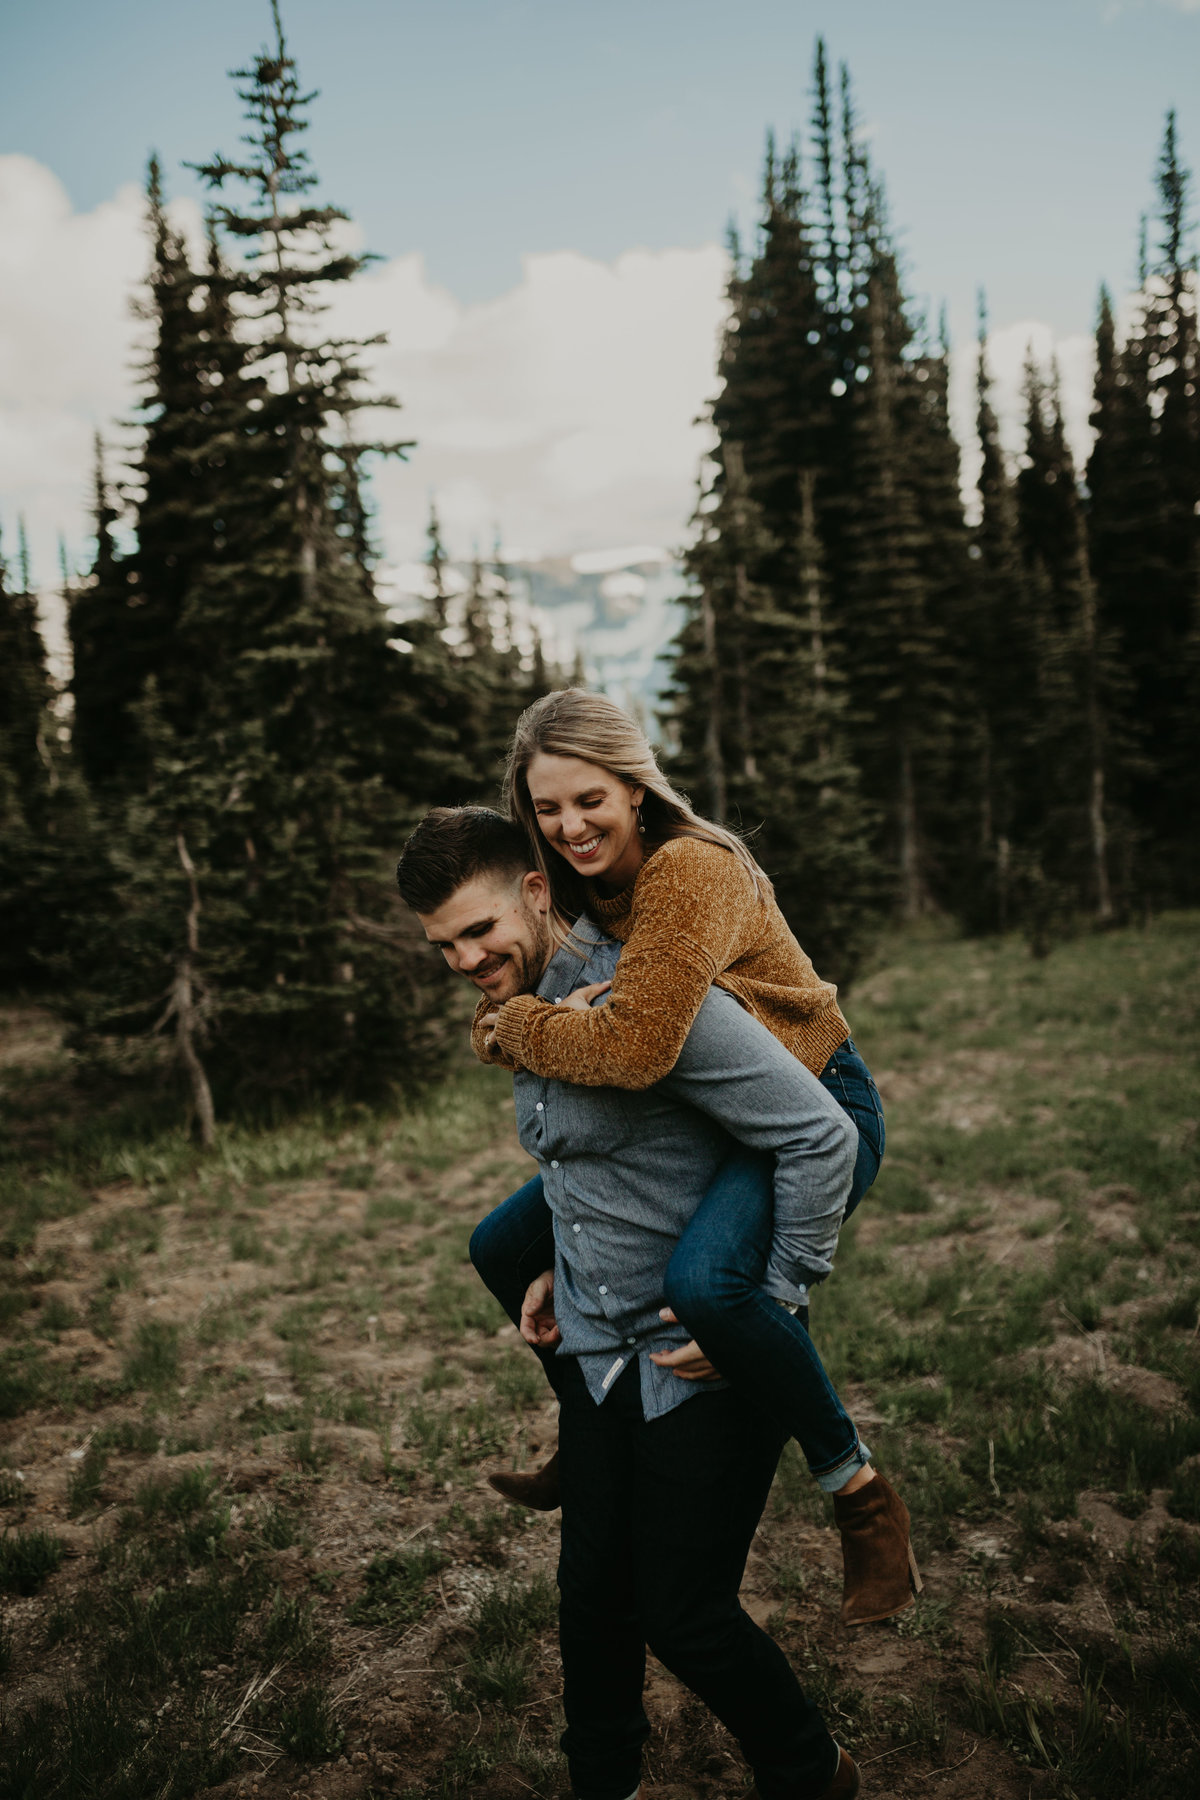 Marnie_Cornell_Photography_Engagement_Mount_Rainier_RK-134